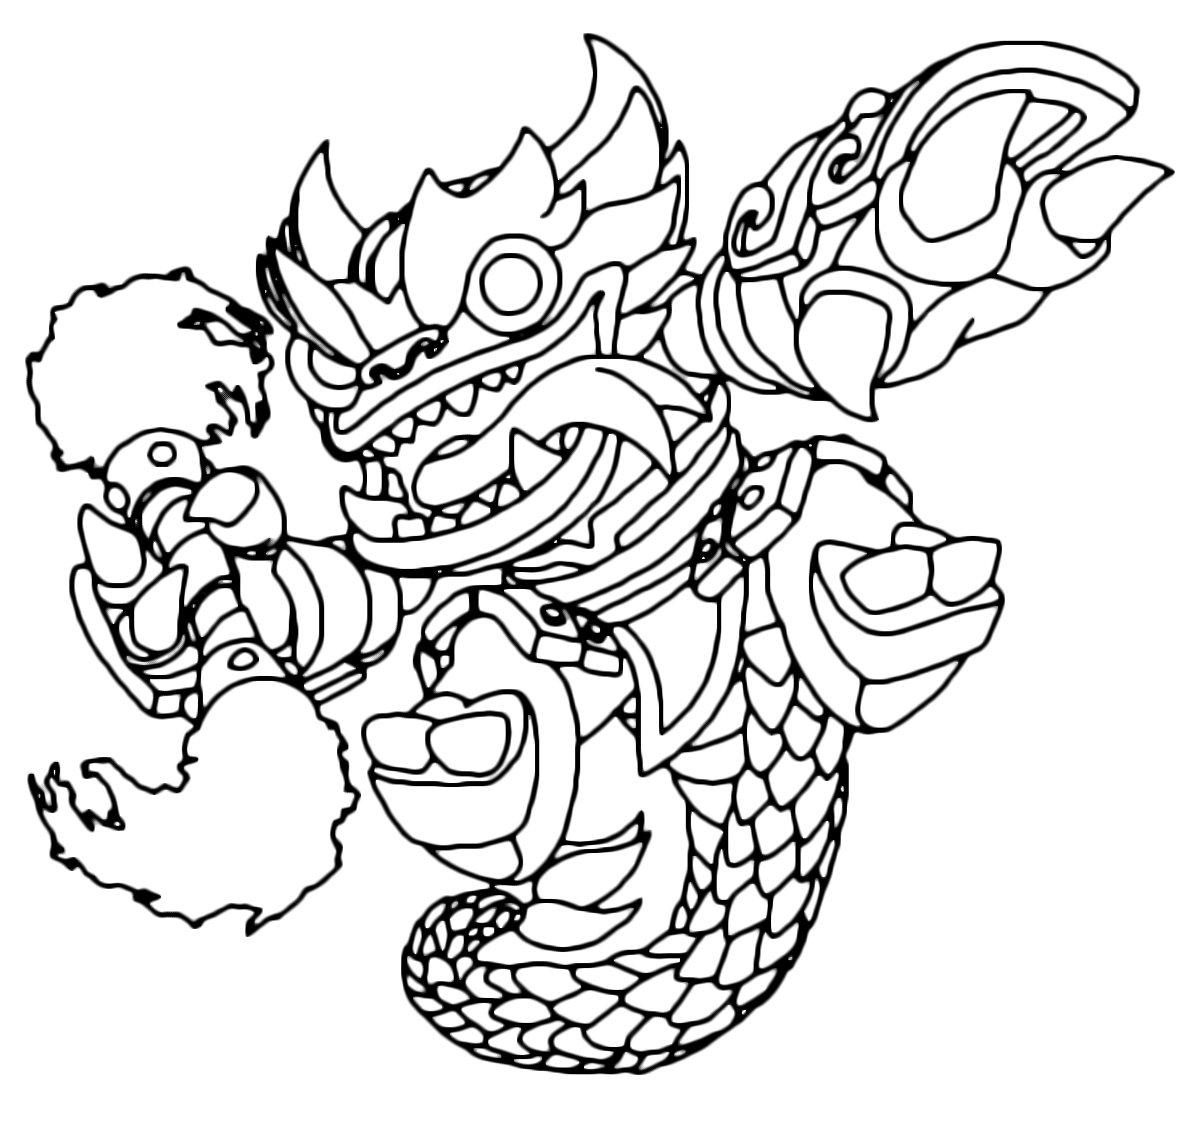 Printable coloring page for kids with Skylanders Swap Force NIGHT ... | 1144x1200